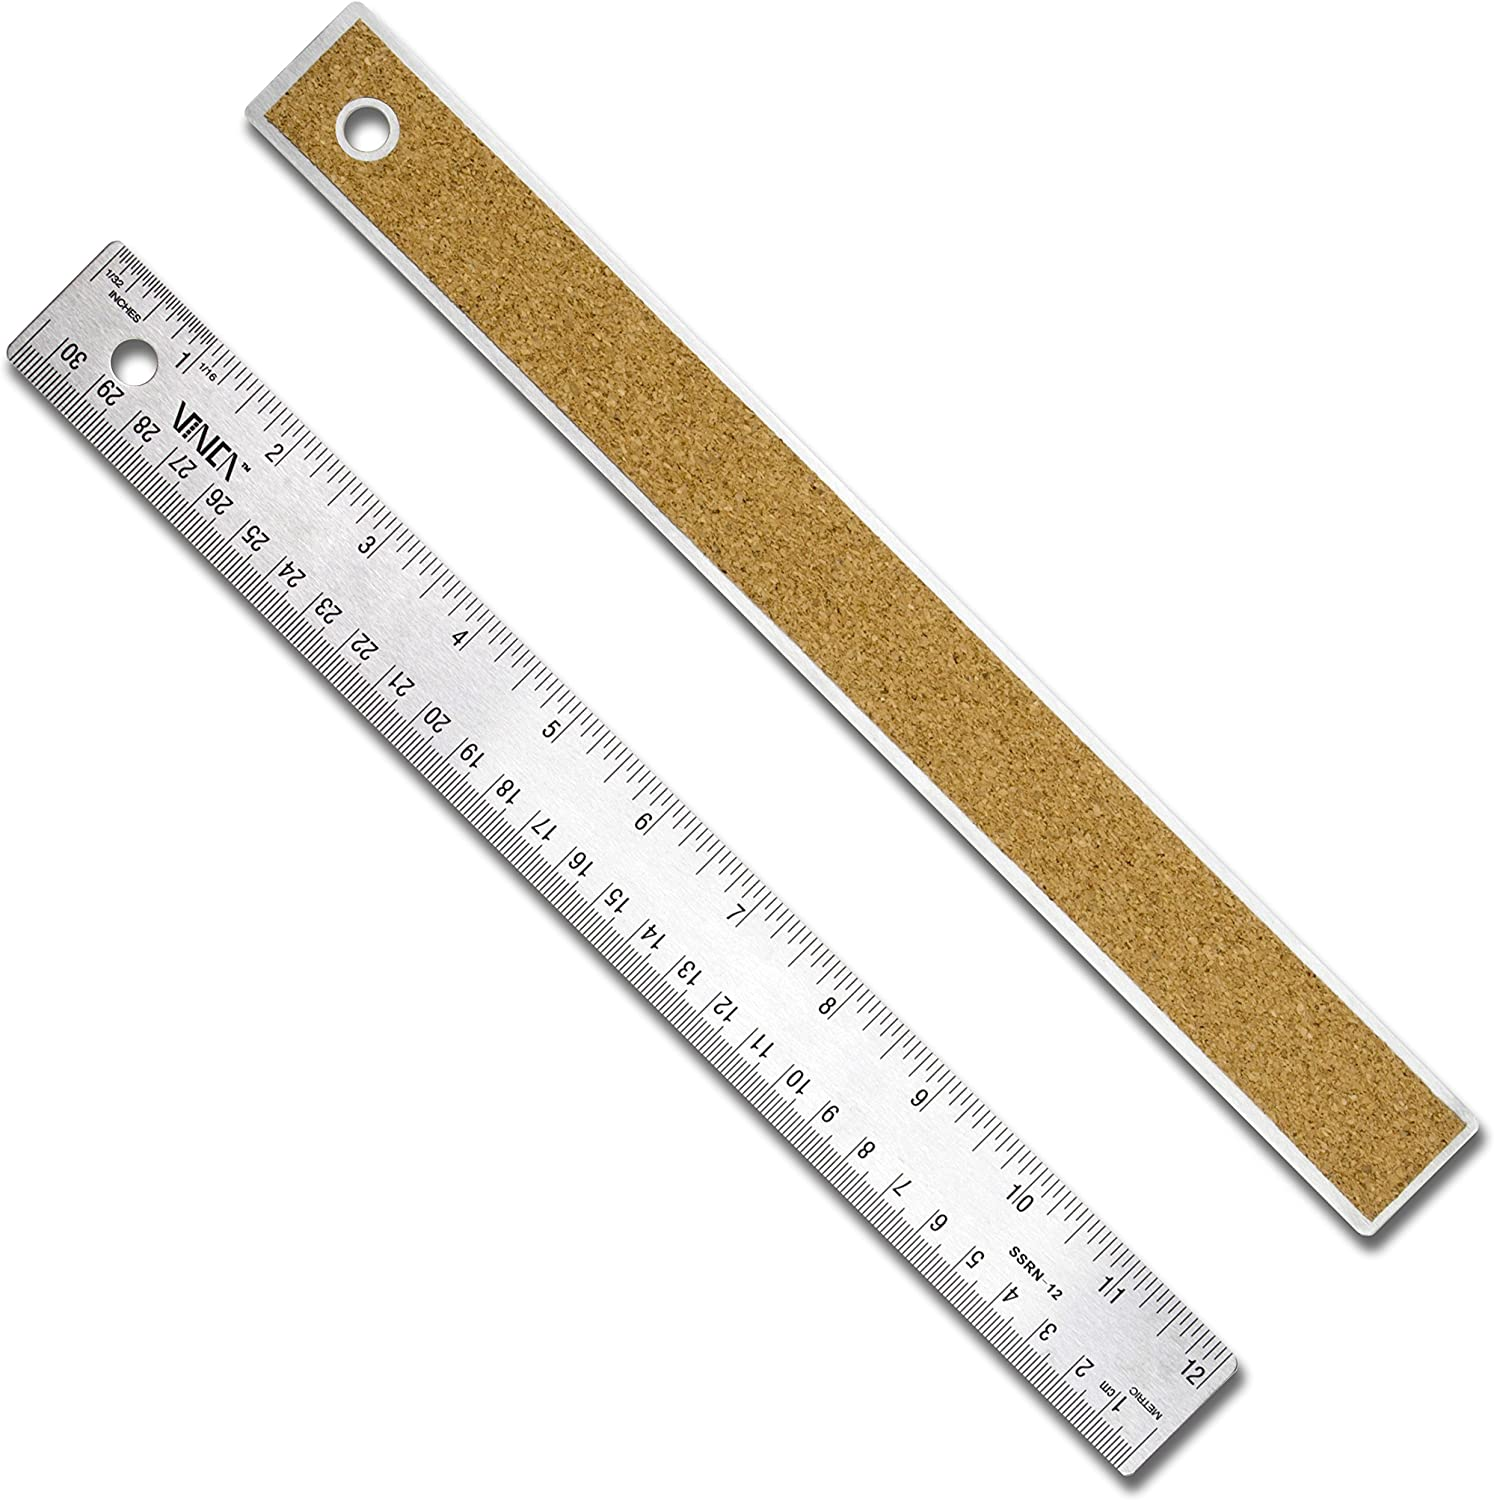 12 Inches Long Silver Thin and Flexible Stainless Steel Ruler One Piece 30cm